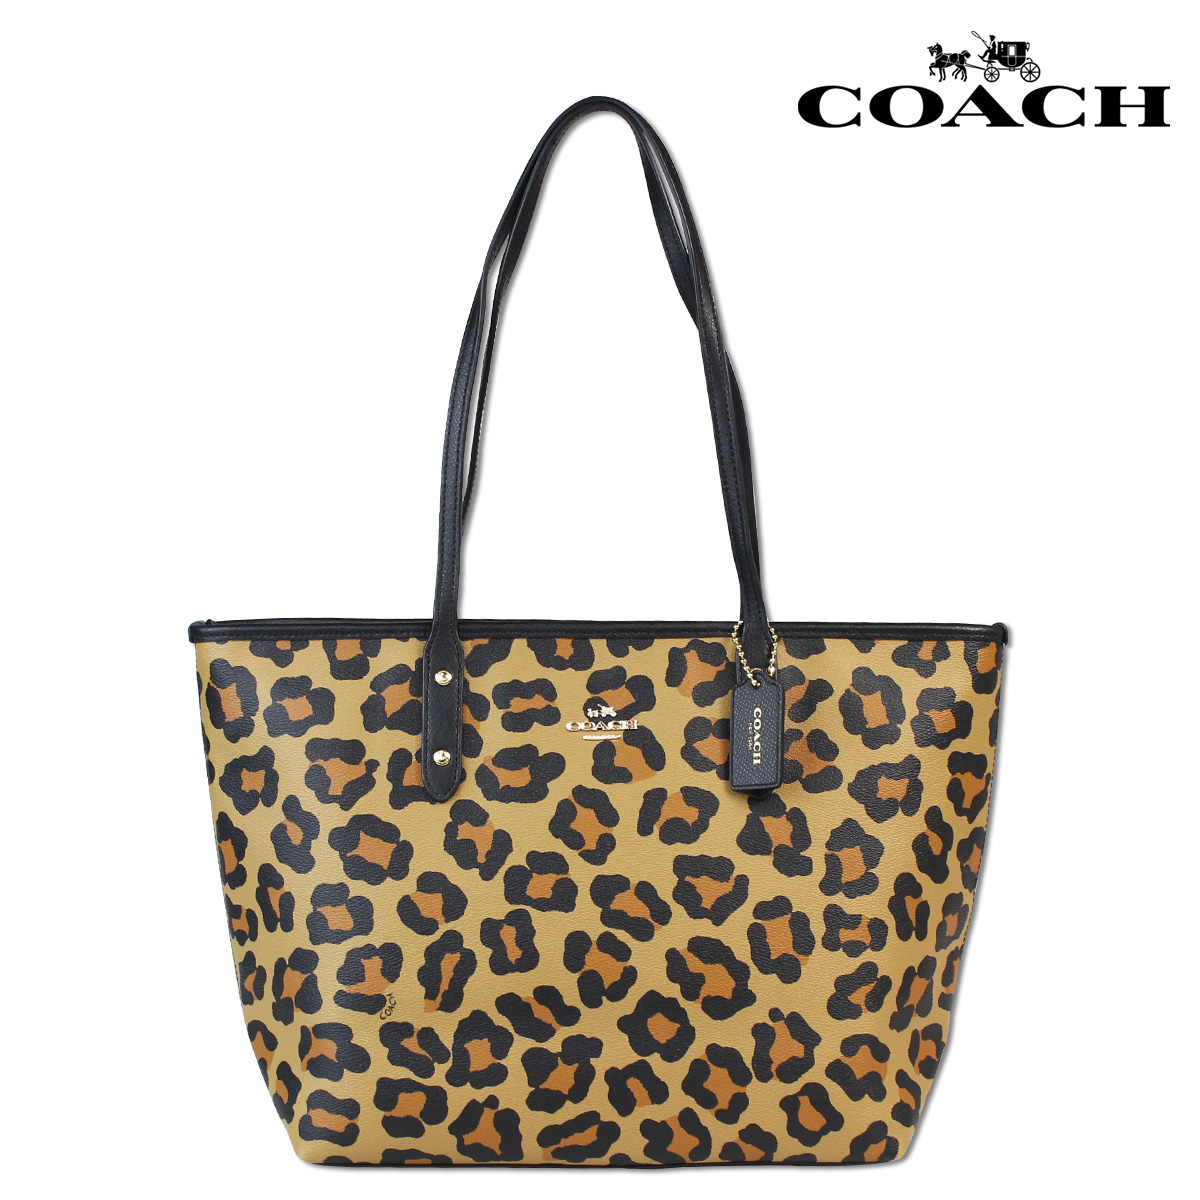 68a2ffde5a5 ... coupon code coach coach bag tote bag f36883 neutral ladies b373c dc7da  ...